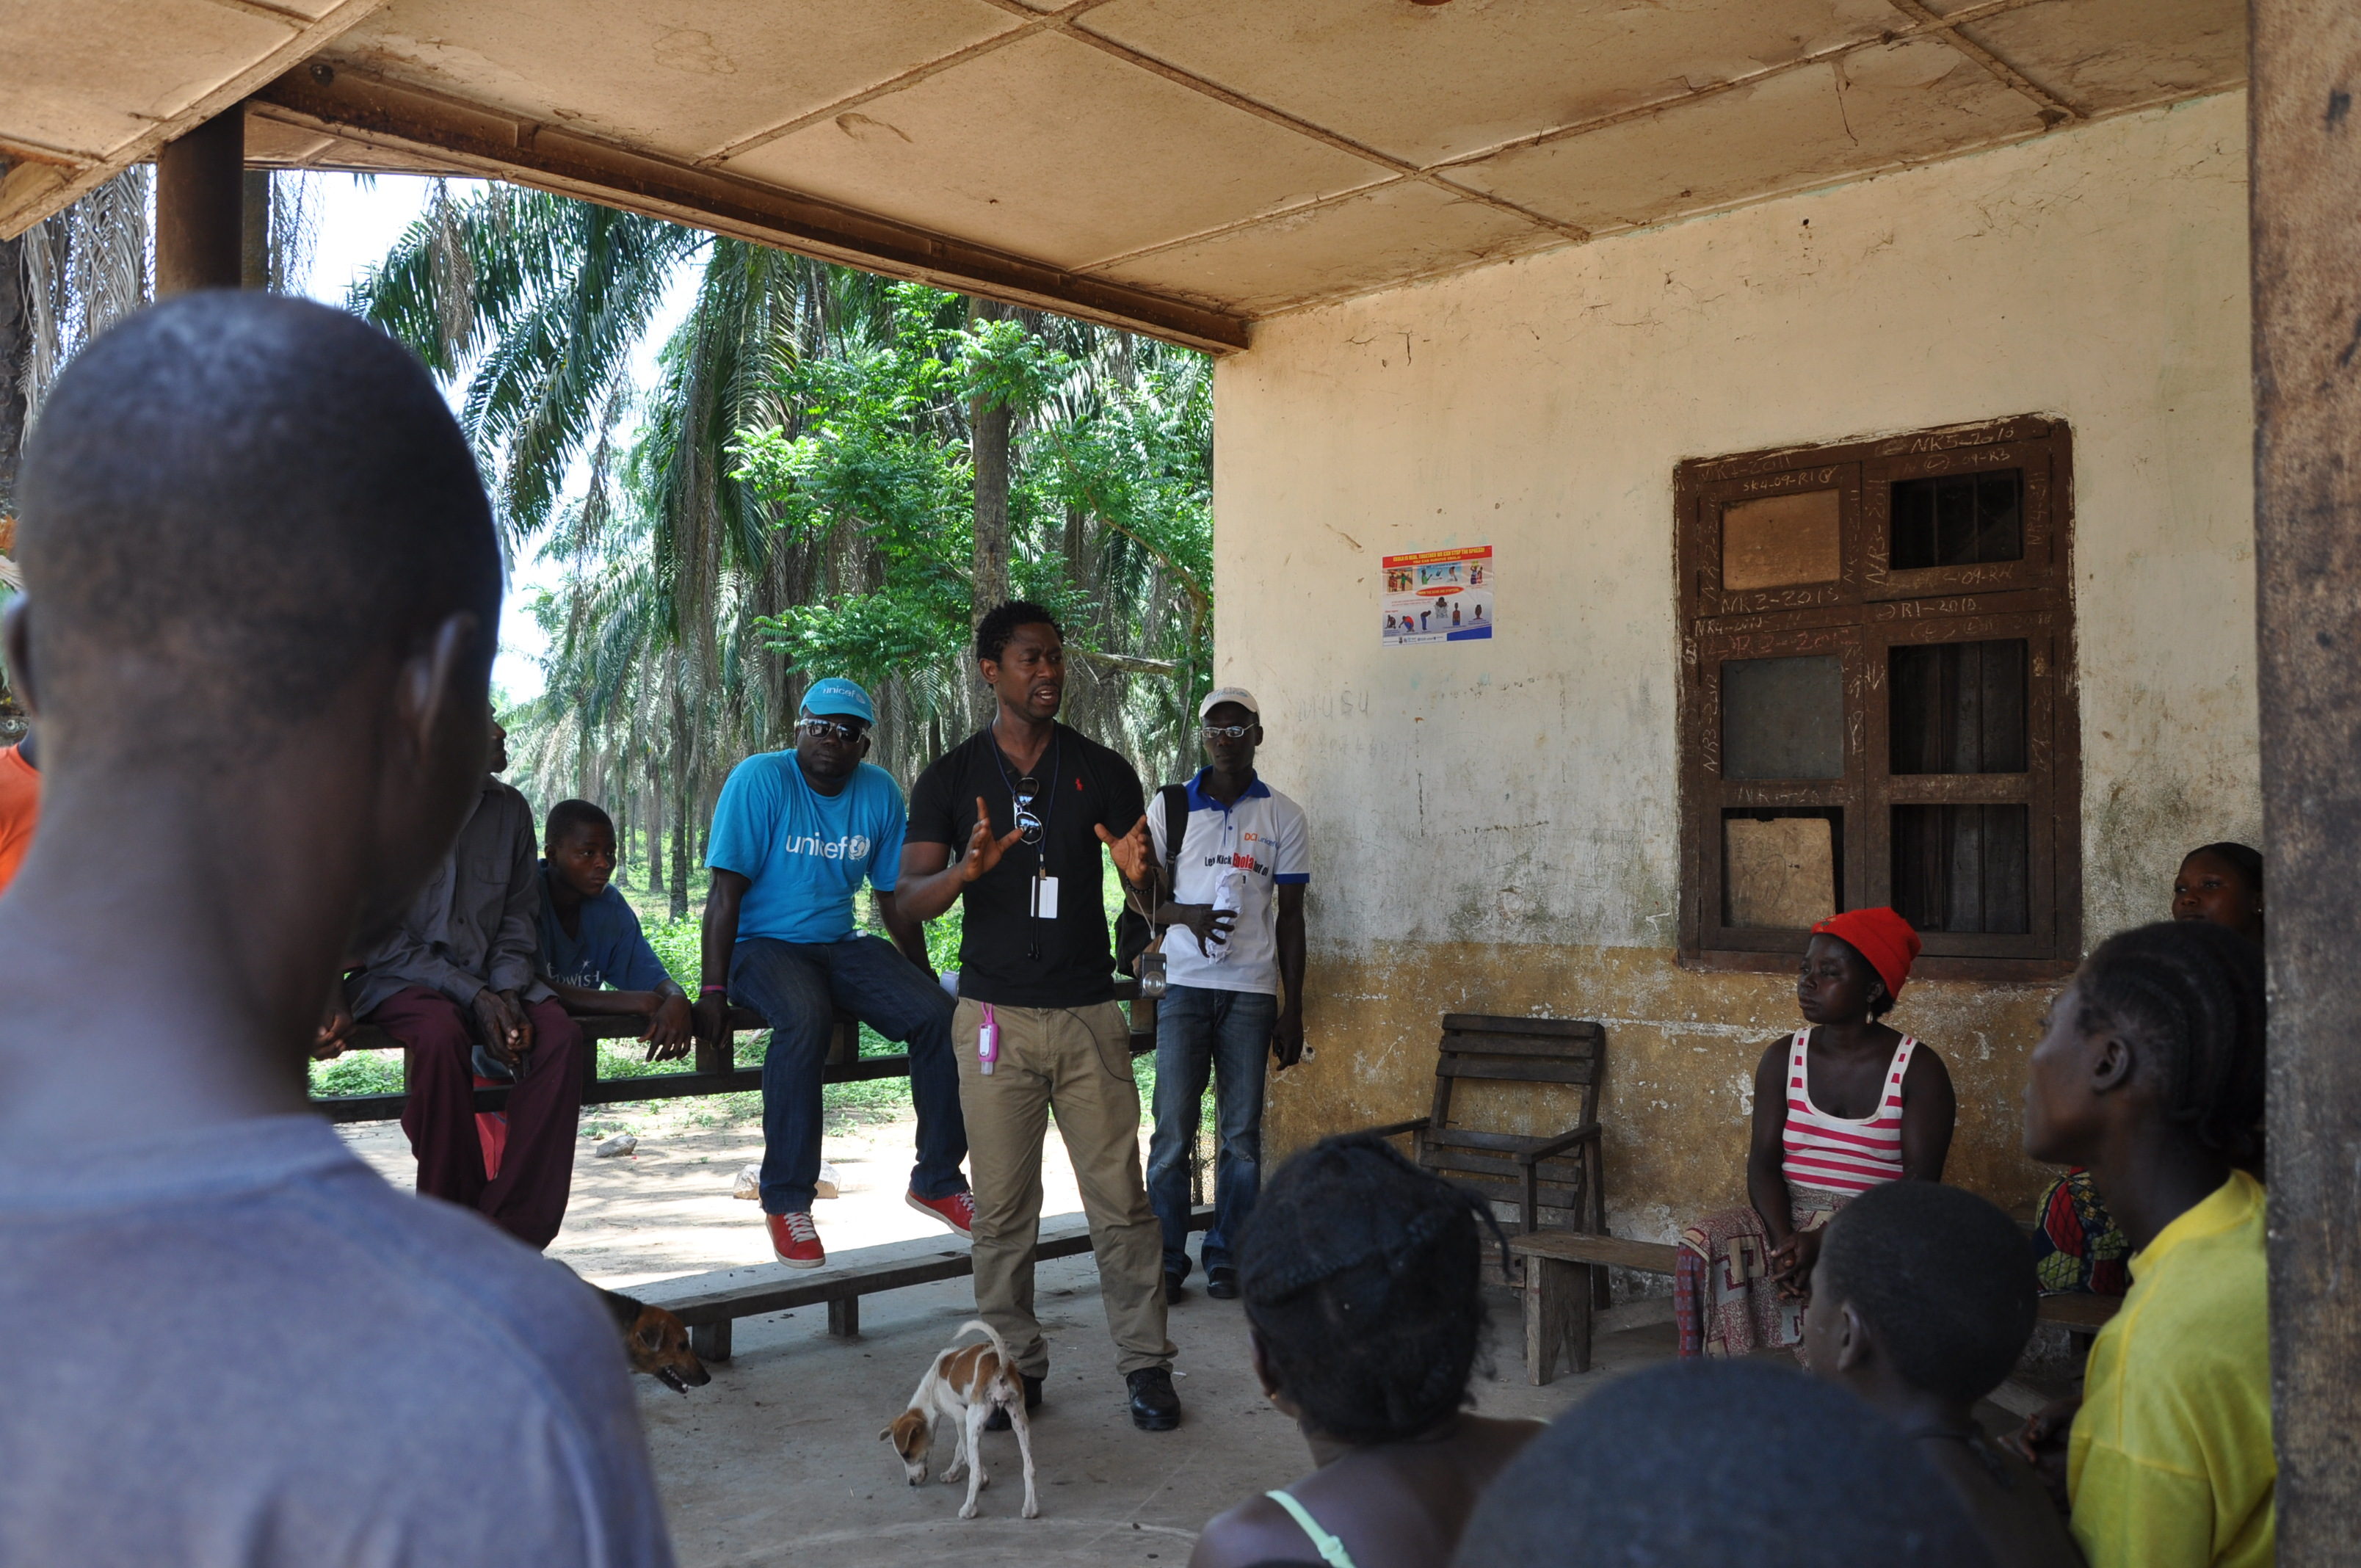 Dutch and his team are key to building trust with communities and helping them protect themselves against Ebola.